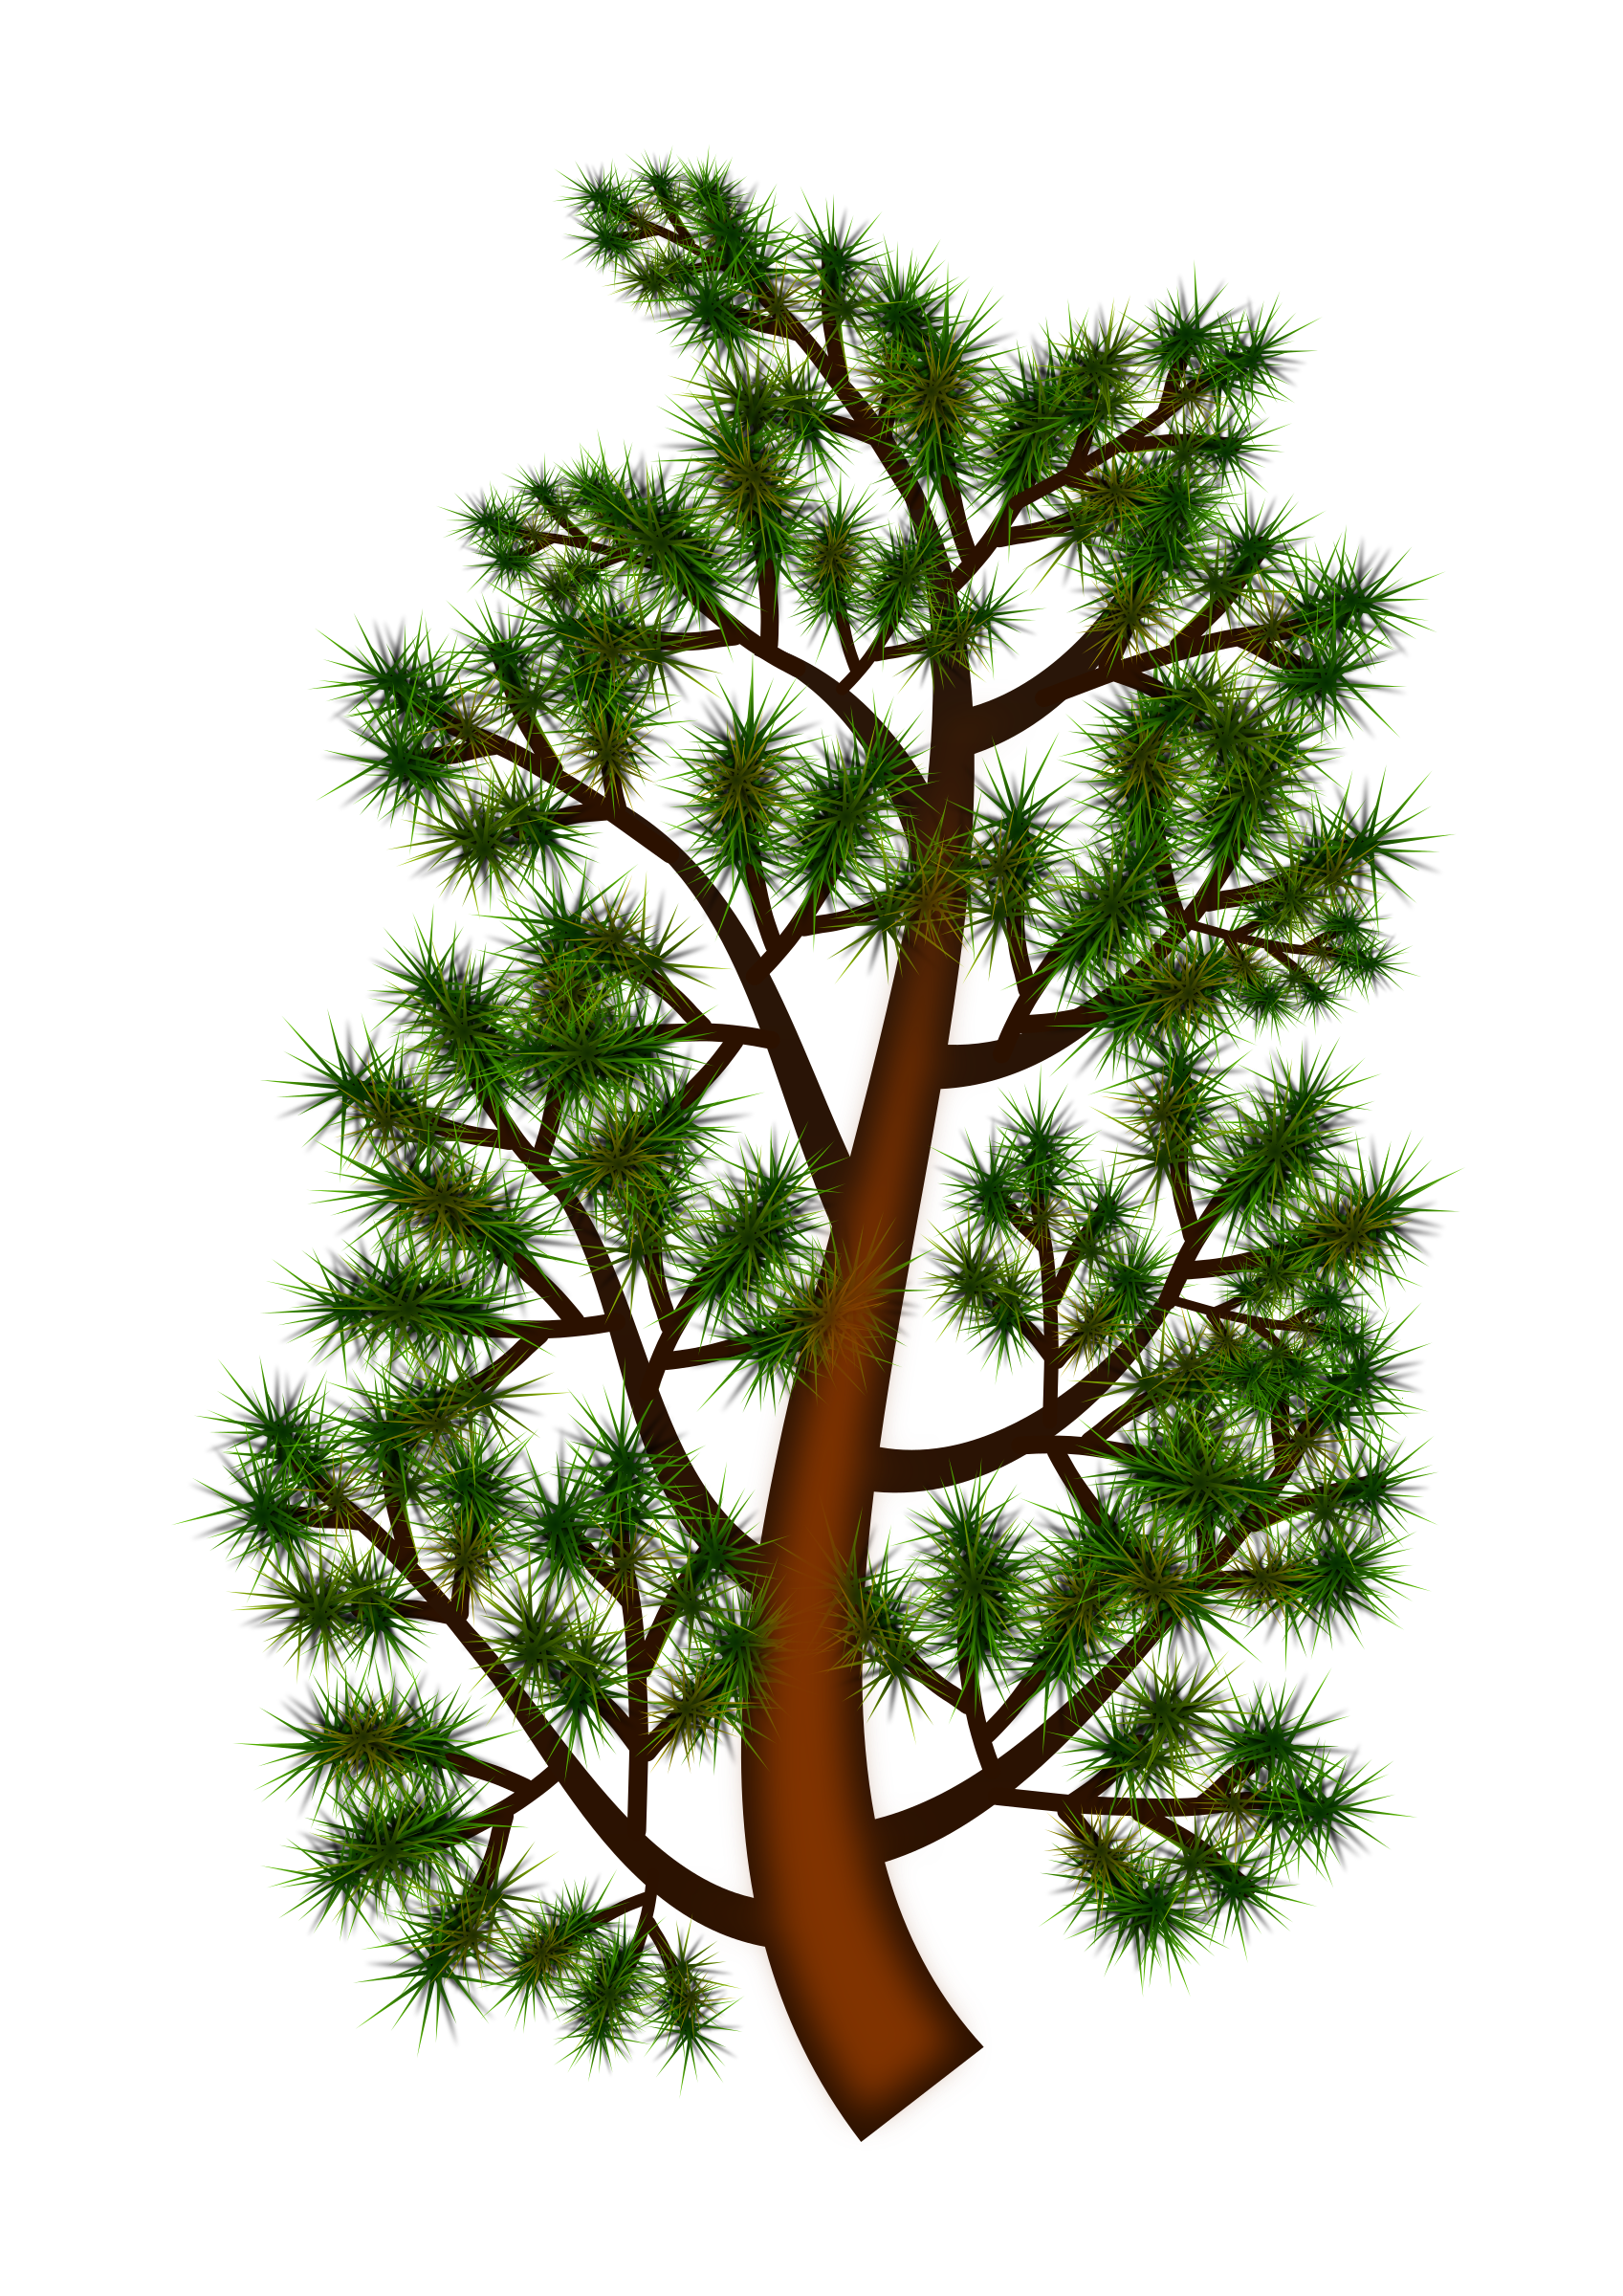 Pine tree branch clipart clip royalty free stock Clipart - Pine tree branch clip royalty free stock